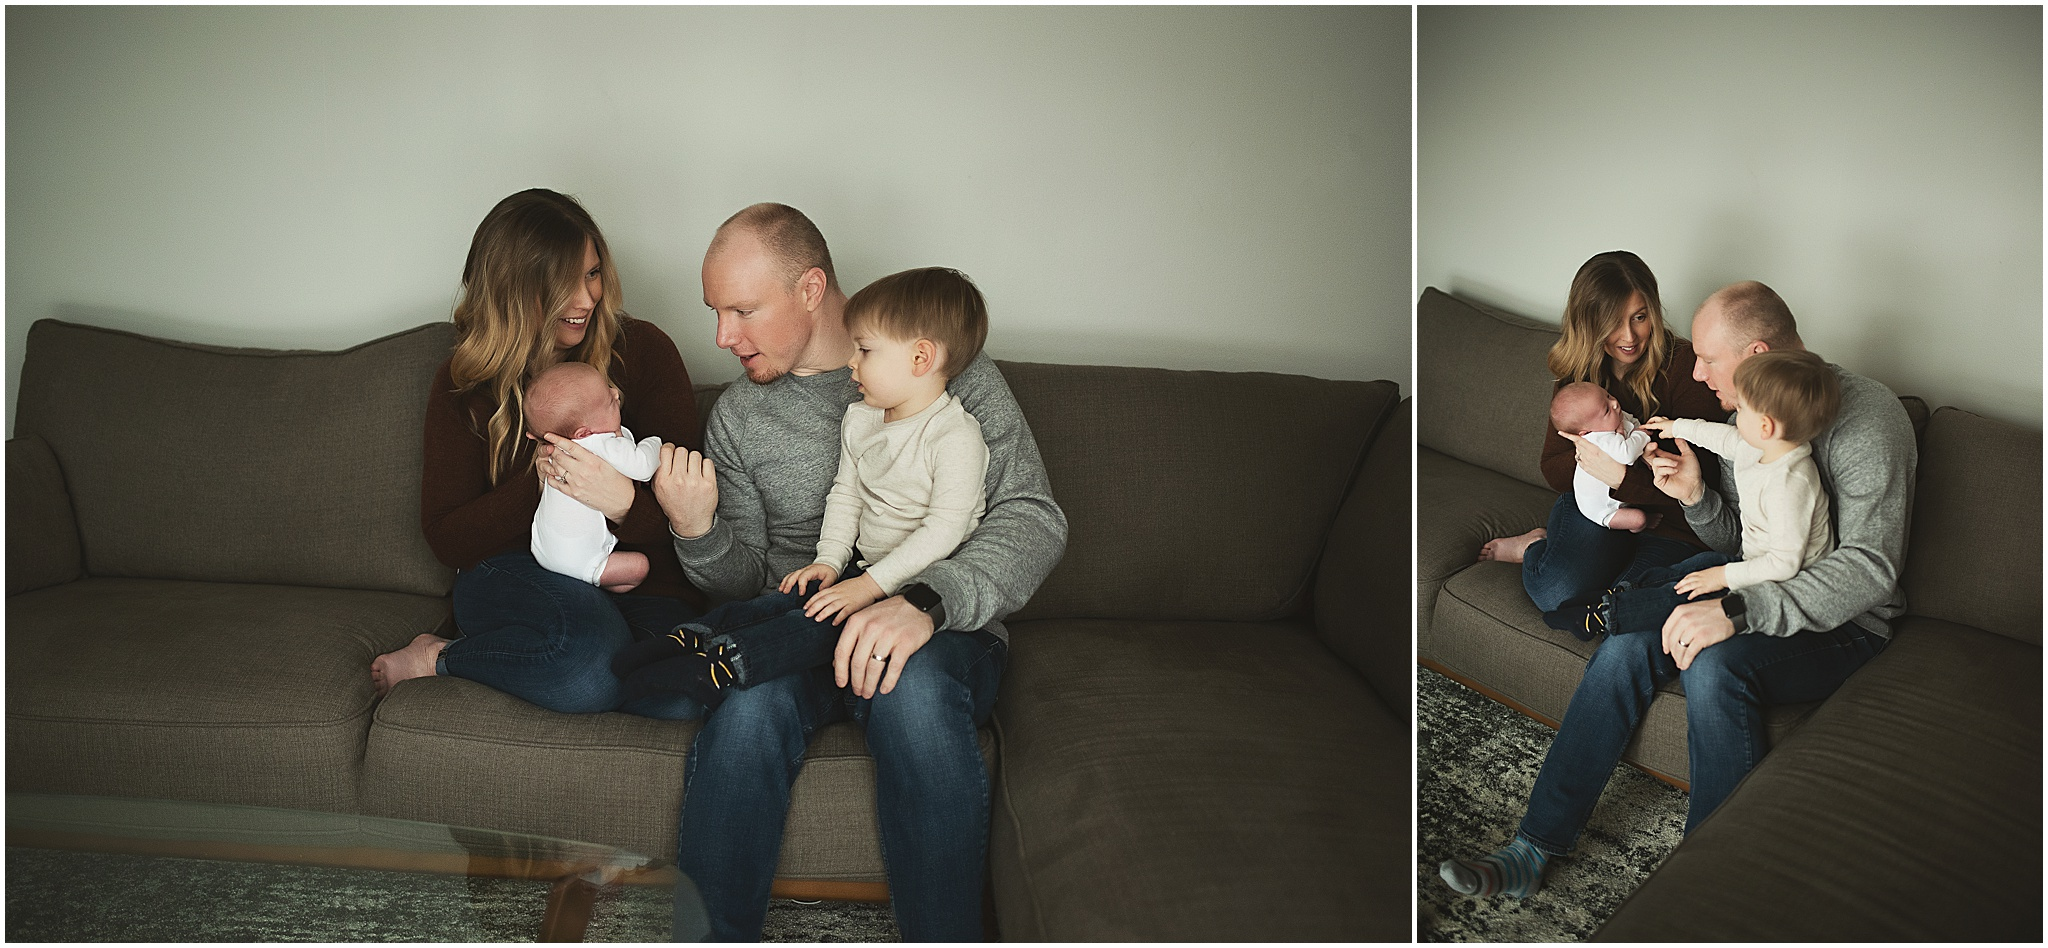 karra lynn photography - newborn photographer northville mi - family on couch